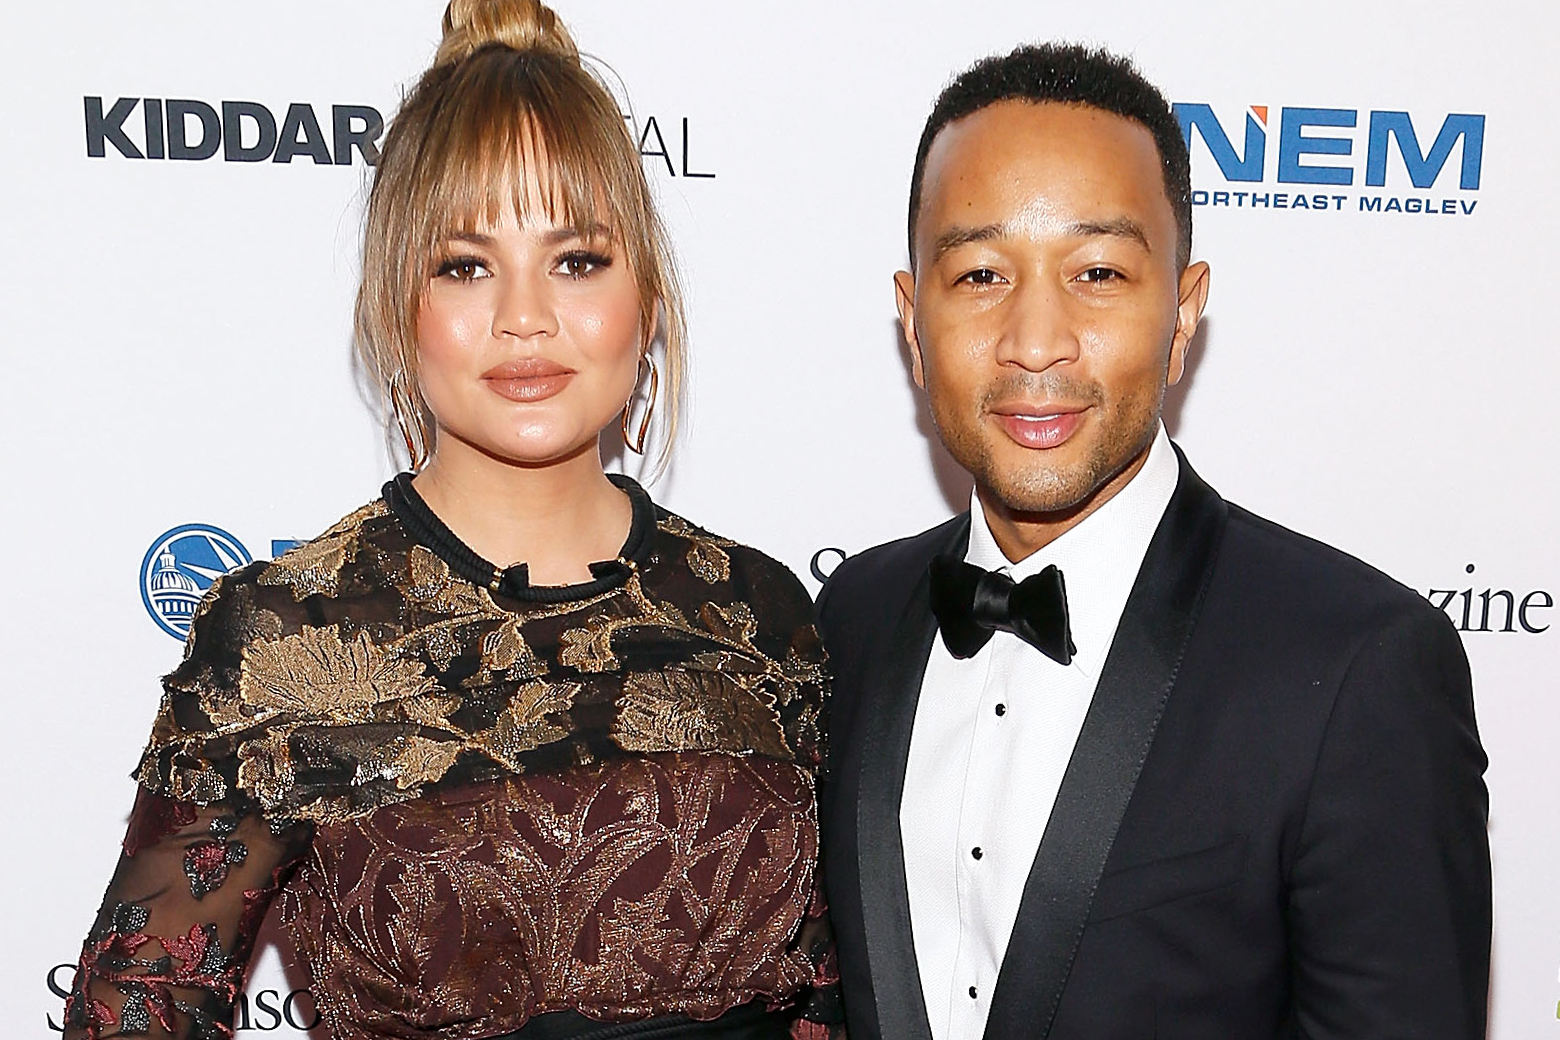 Chrissy Teigen Gives Birth, Welcomes Second Child With Husband John Legend